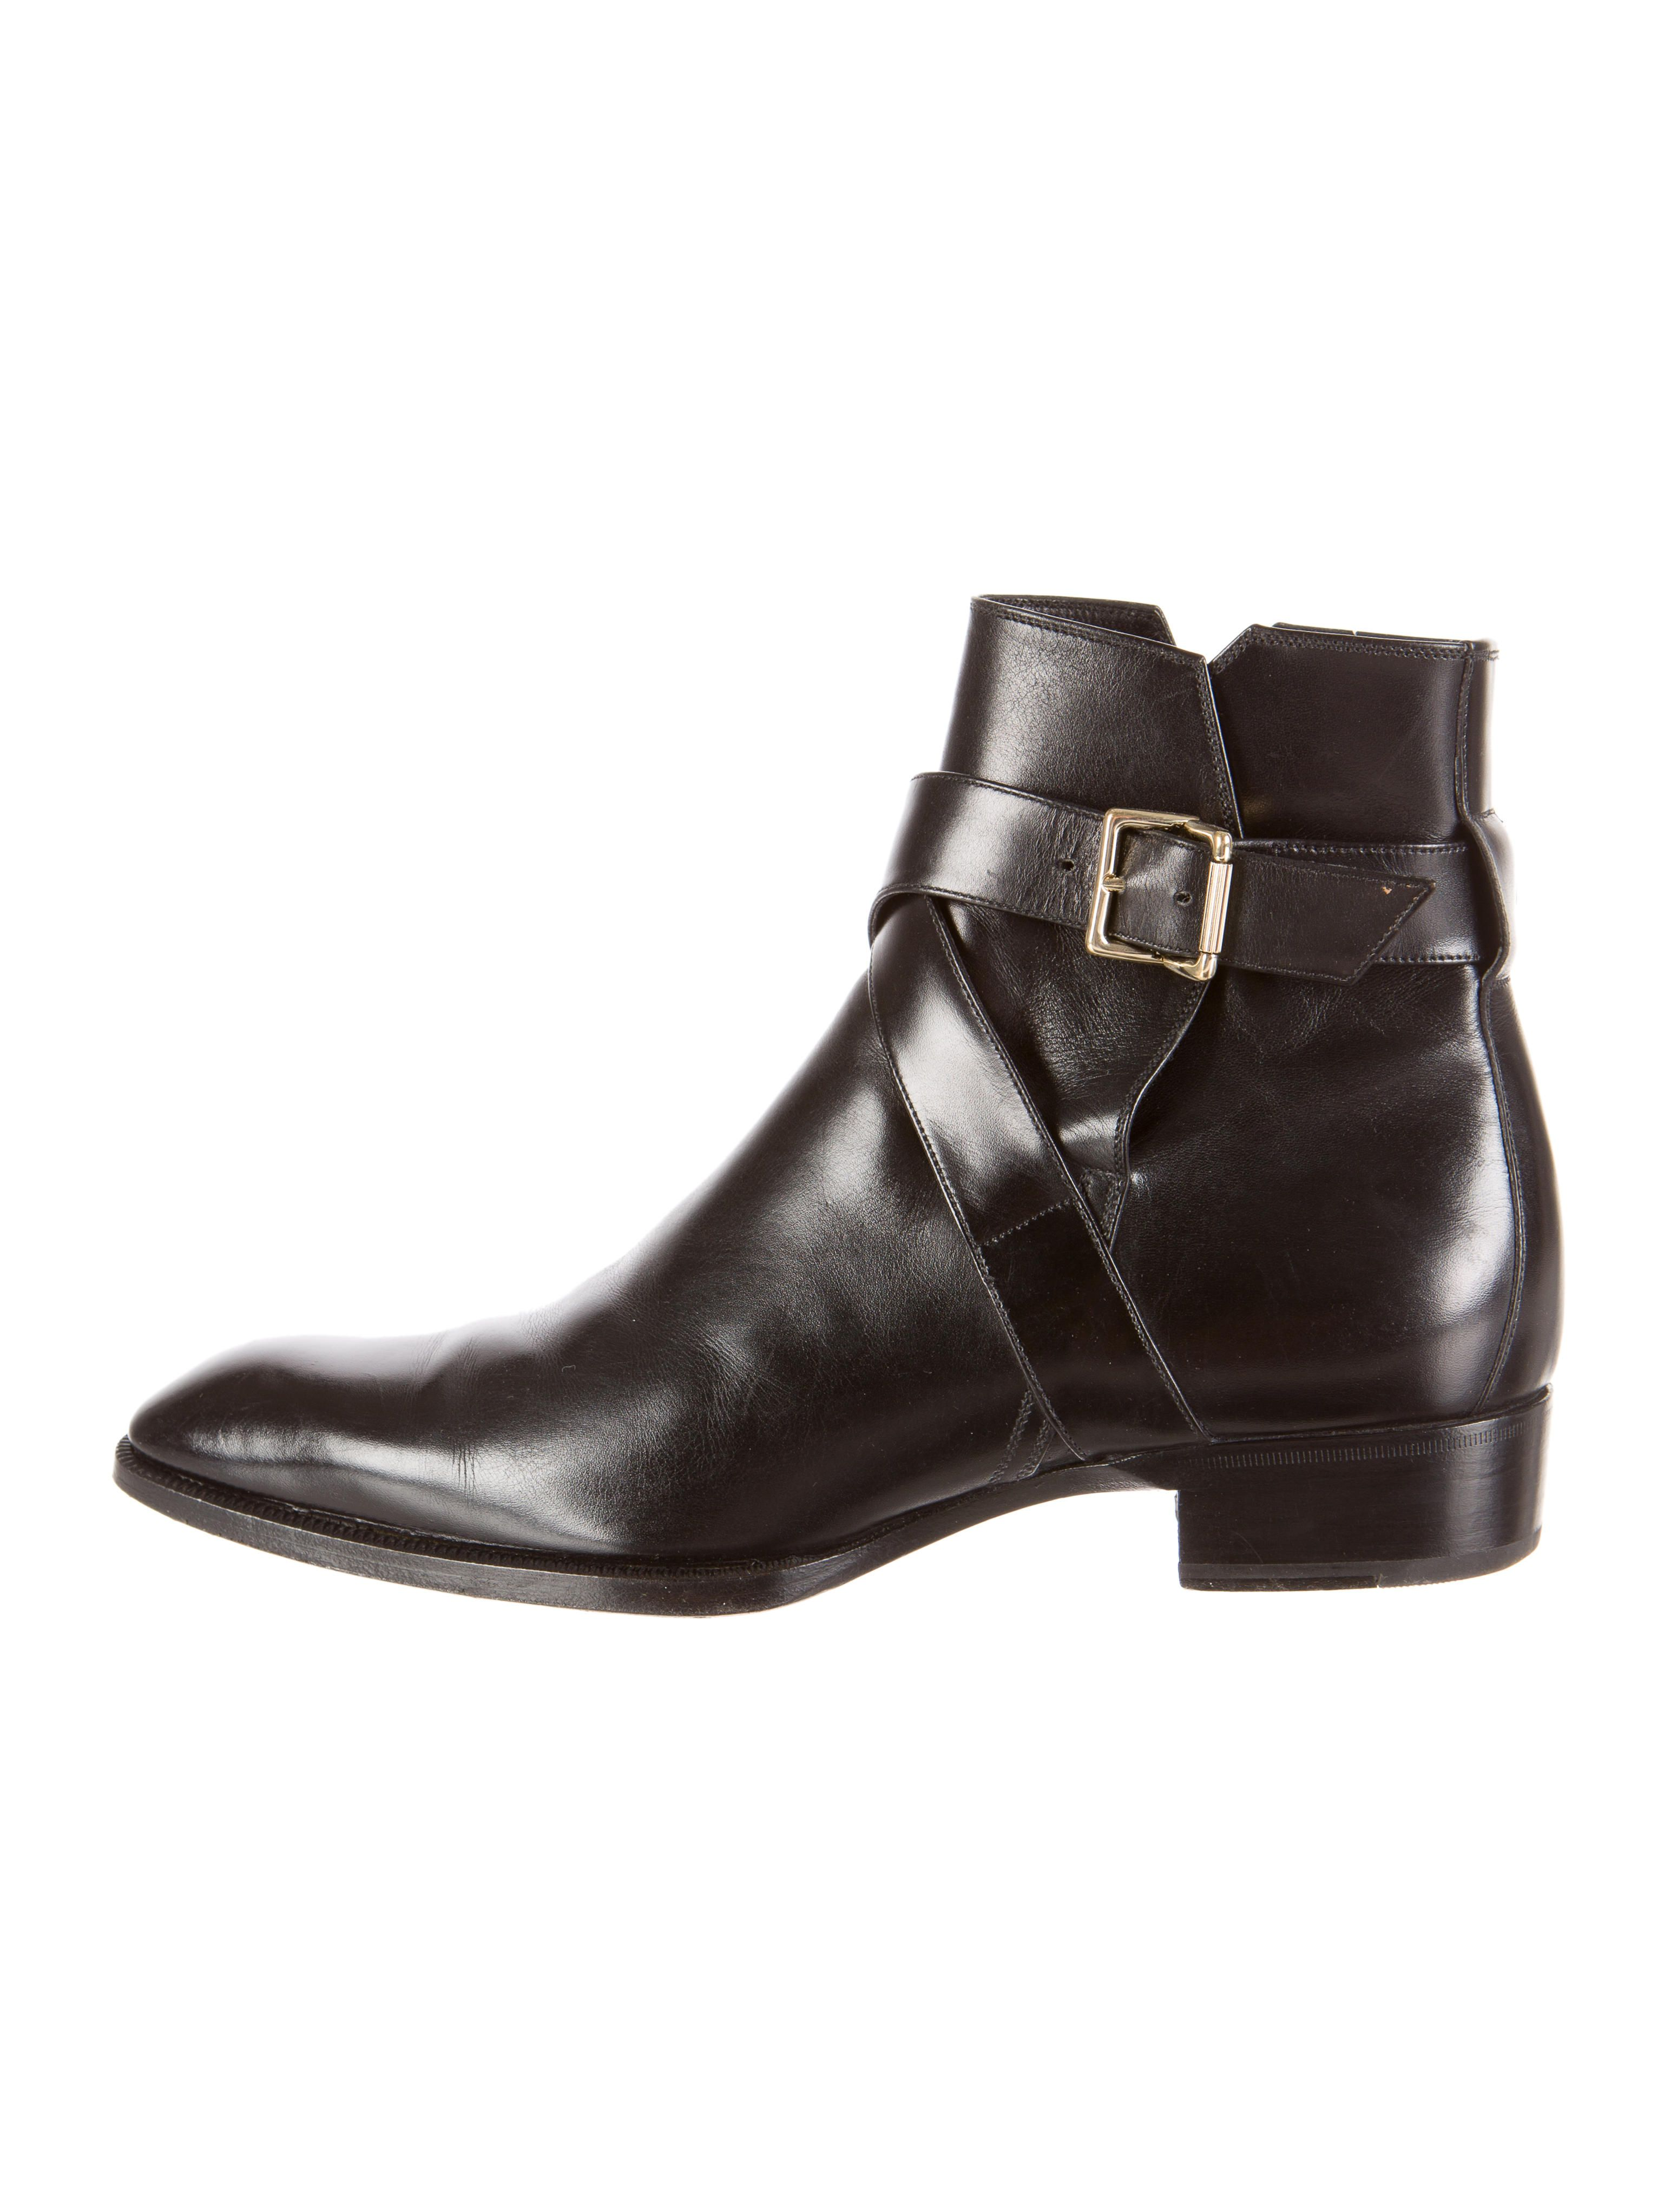 e25a0da95d6 Men's black leather Tom Ford Tom Ford jodphur boots with stacked ...